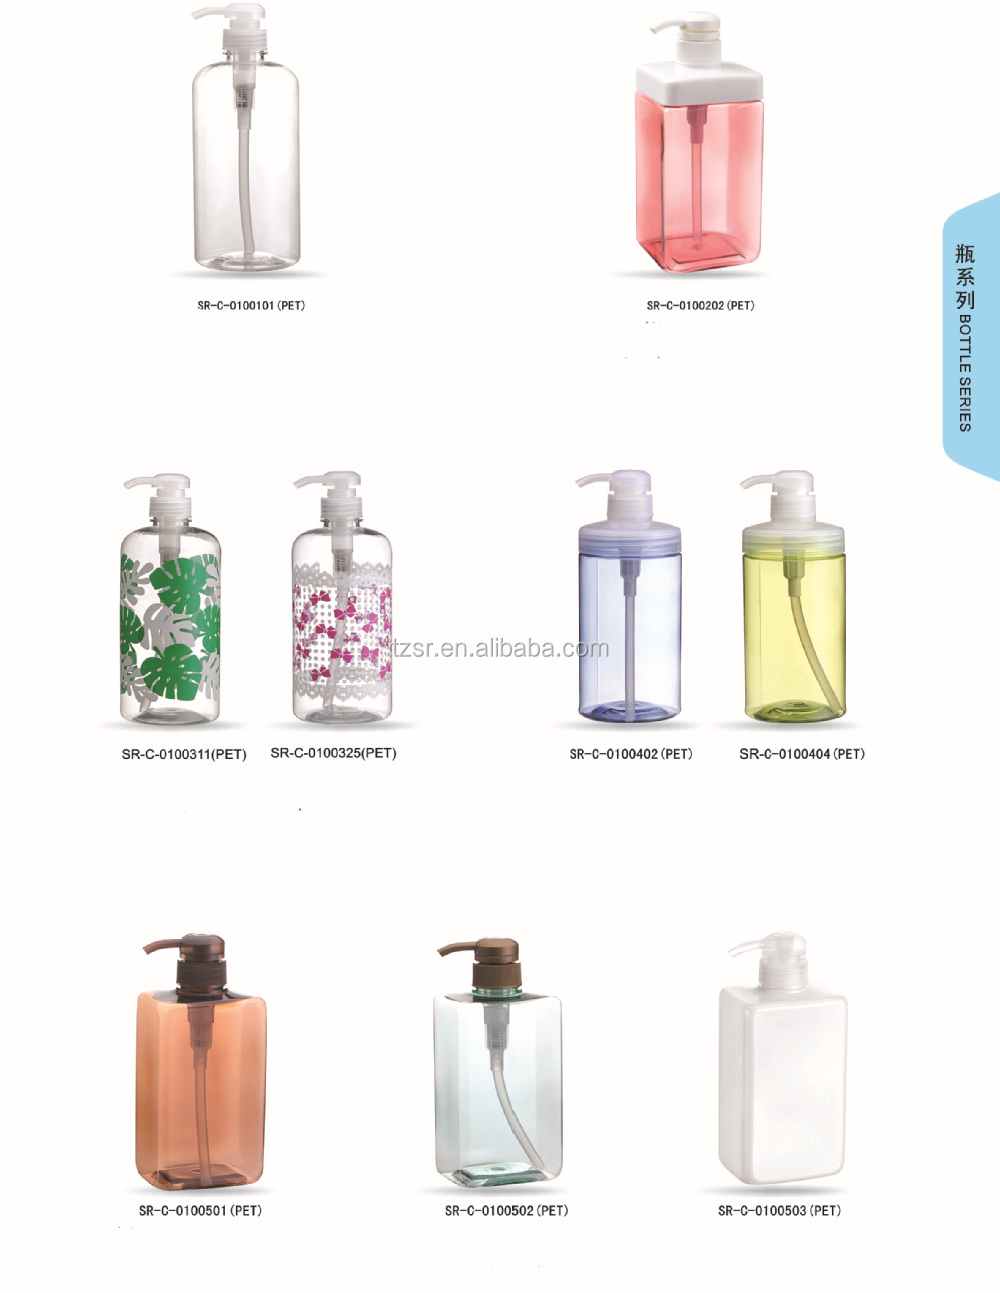 spray bottle portable water humidifier mist maker plastic mist spray. Black Bedroom Furniture Sets. Home Design Ideas